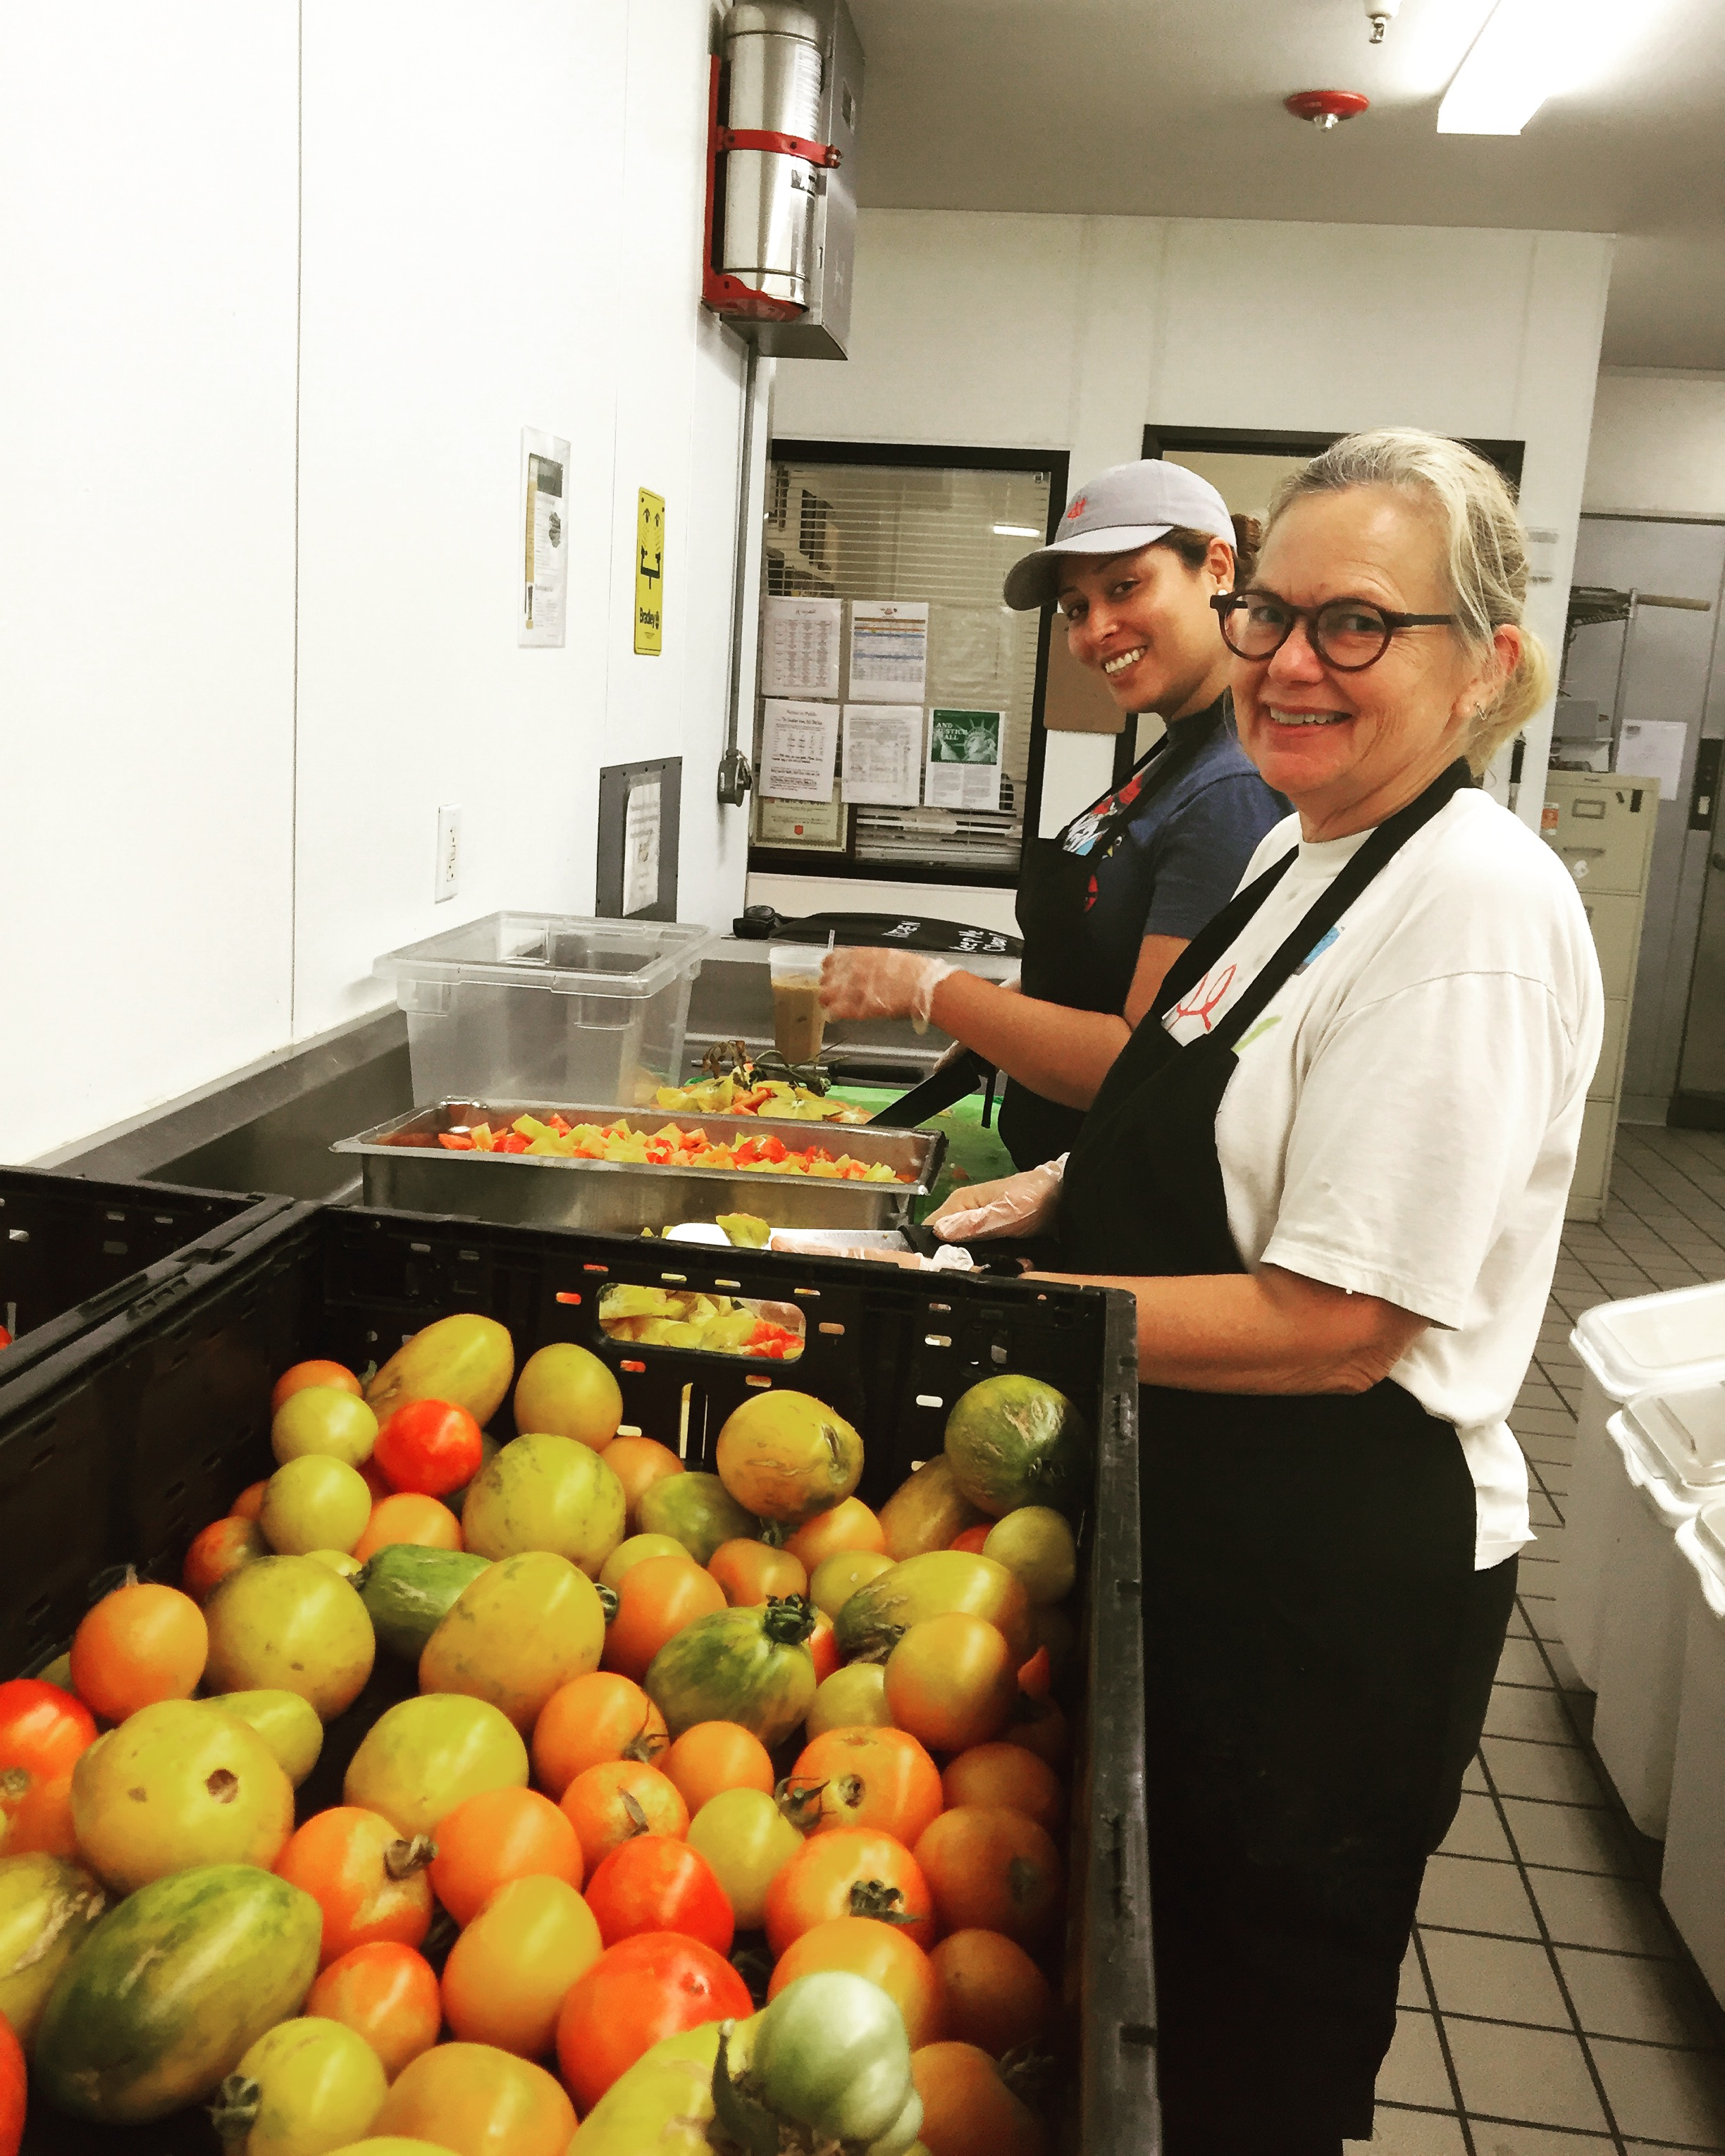 Mary and kitchen staff member slicing tomatoes.